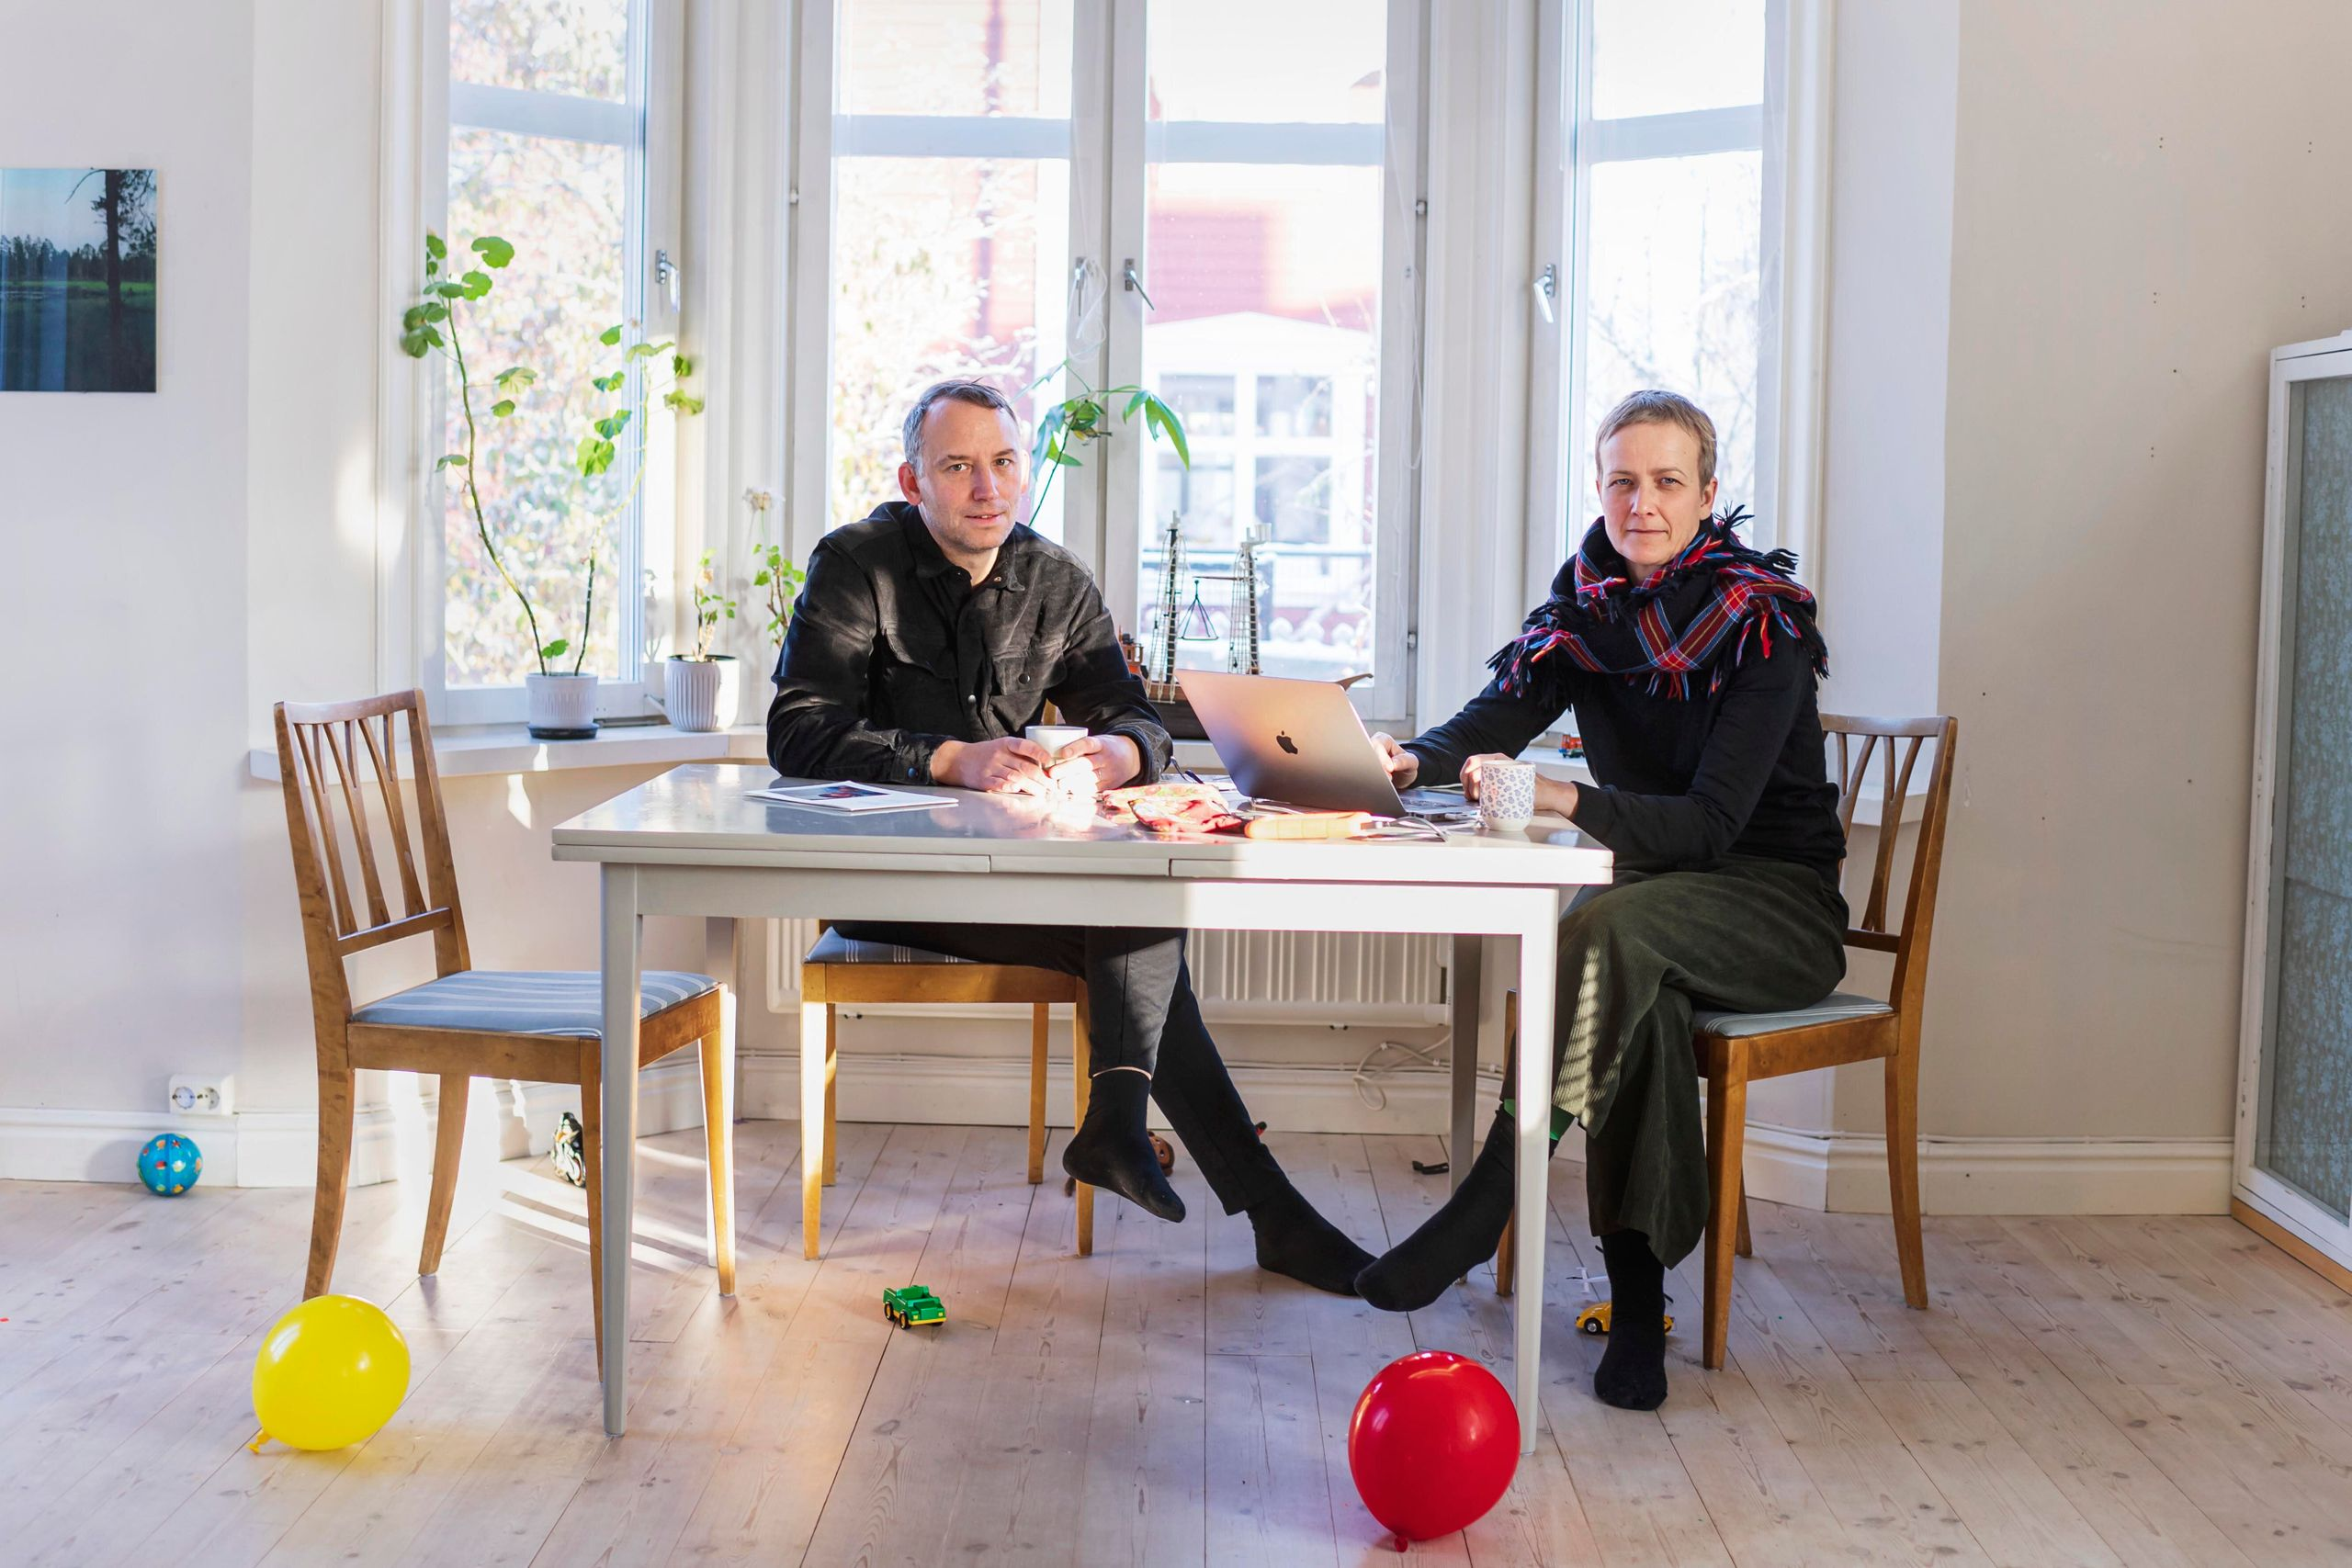 Anja and Tomas Örn, two artists, relax in their living room. They live inSvartöstaden and, like many resident